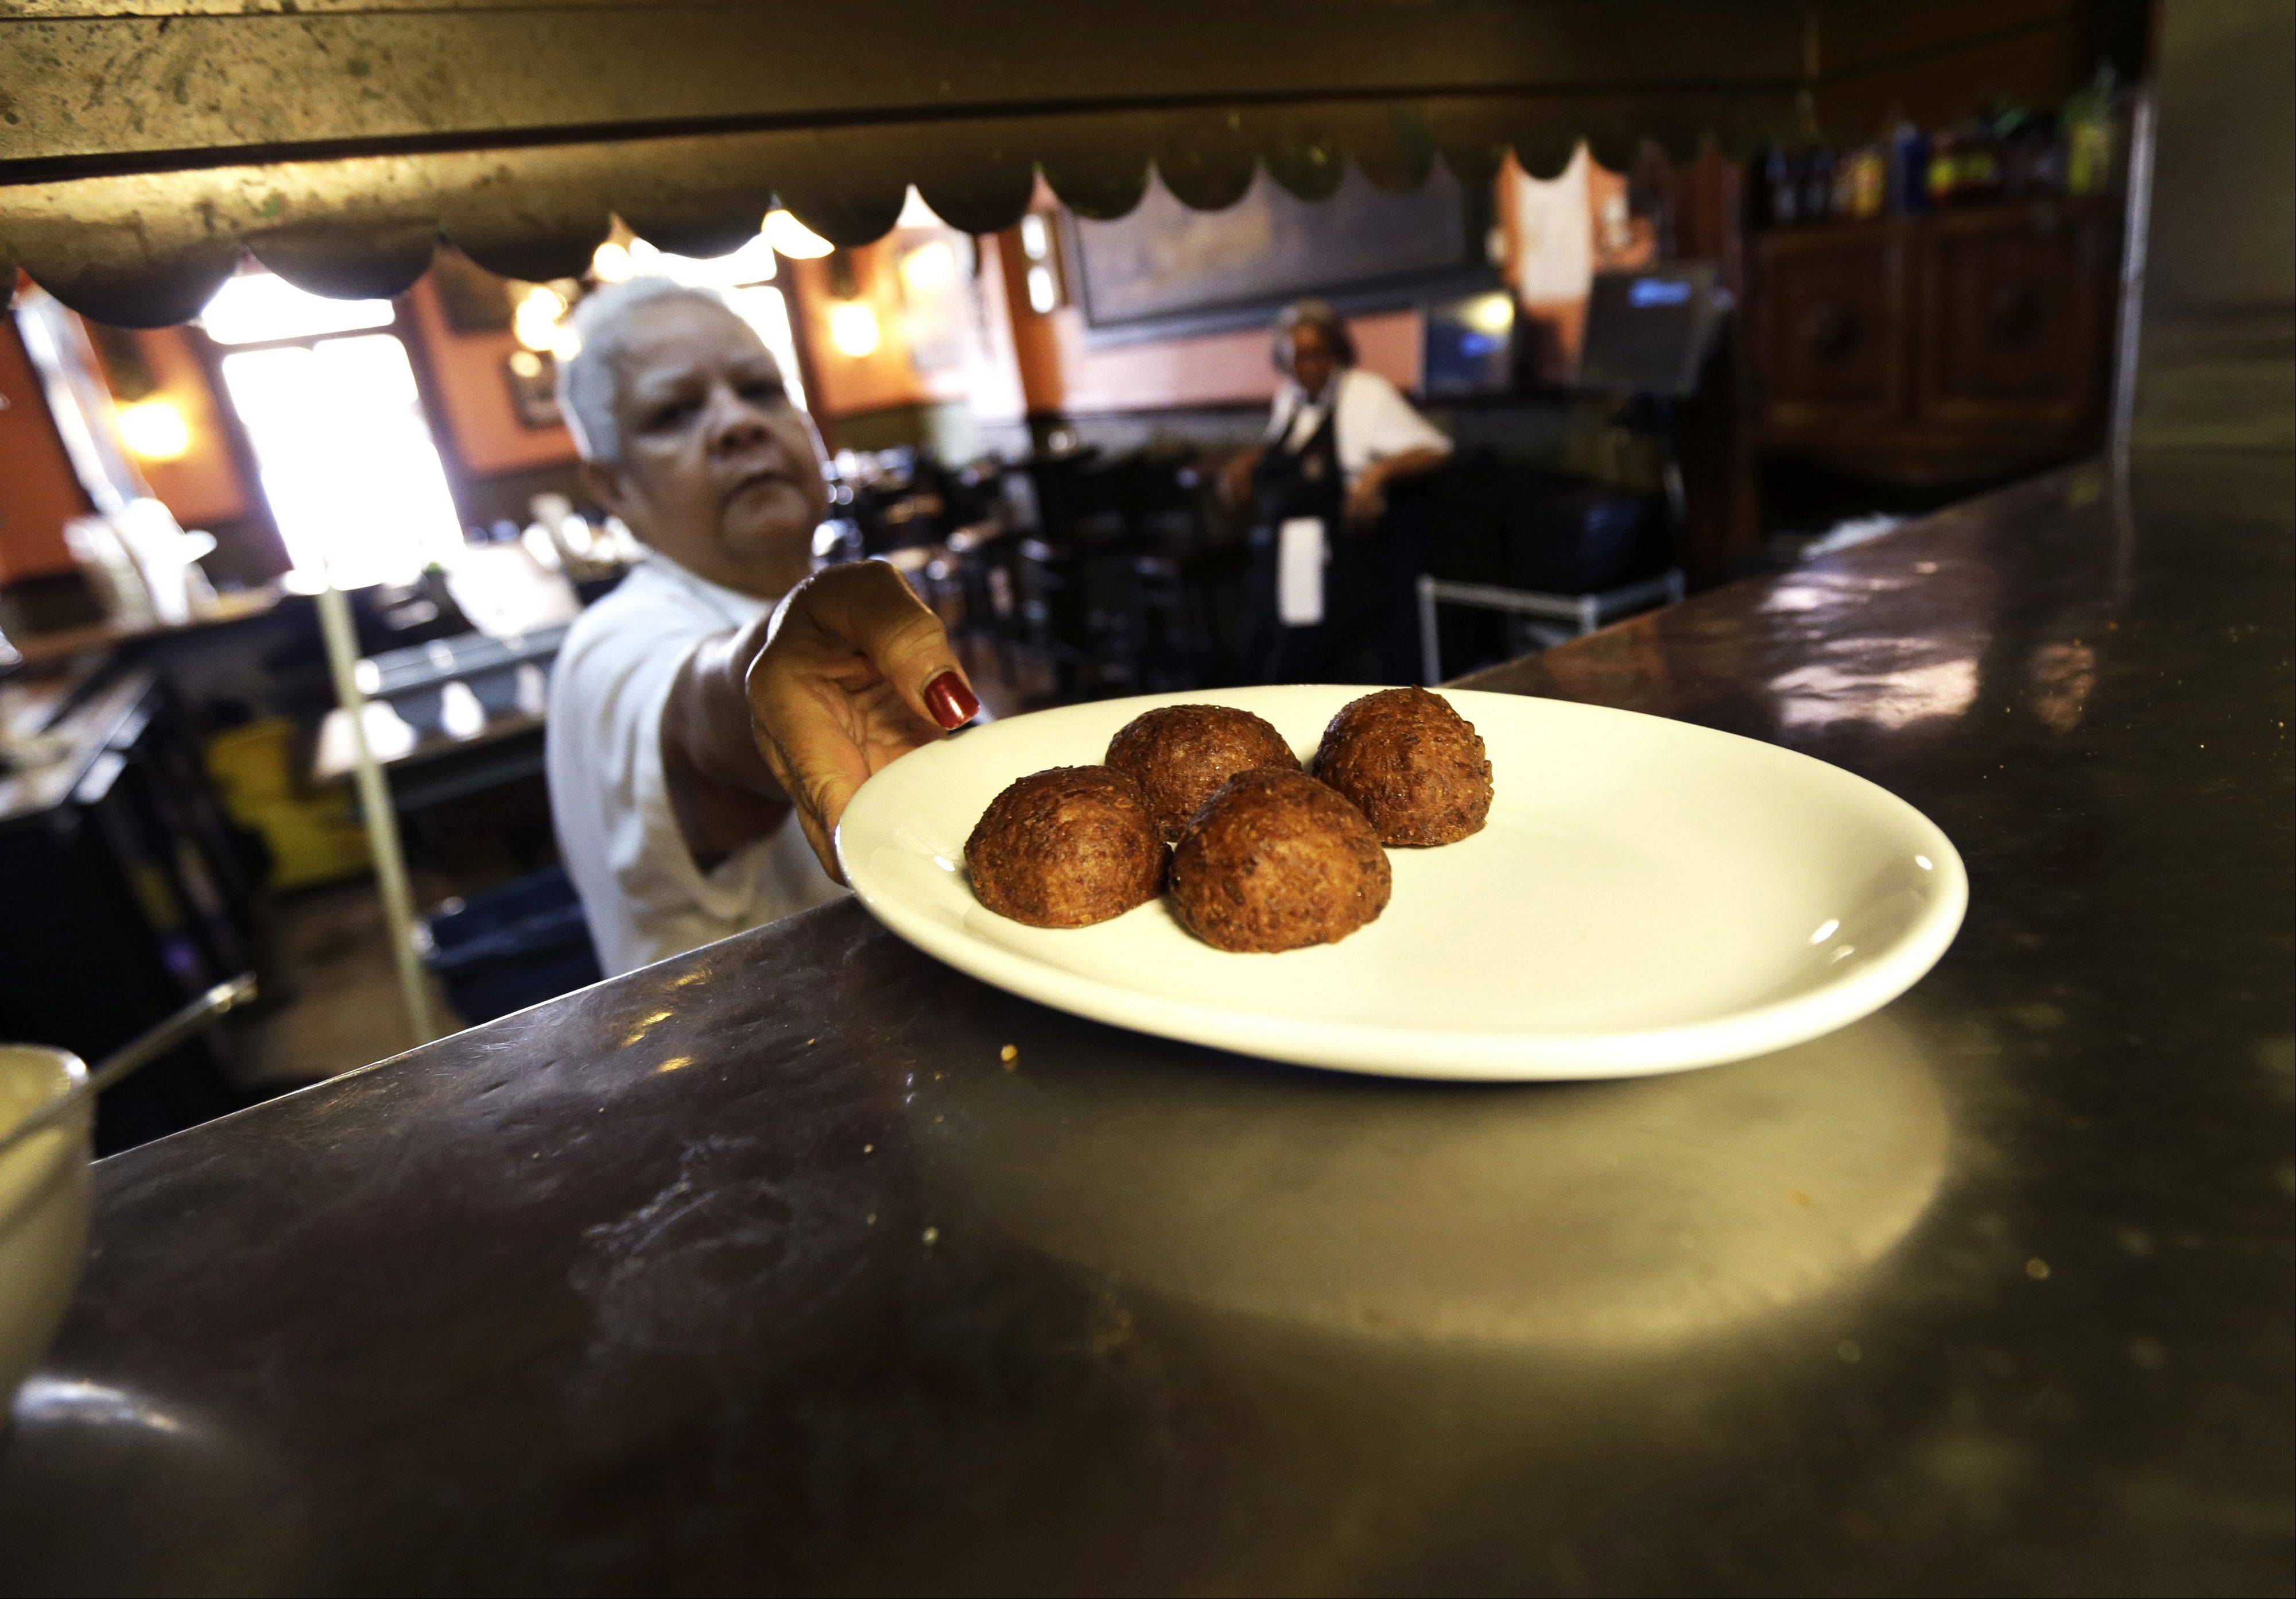 Waitress Gaynell James serves up calas cake from the kitchen at The Old Coffeepot Restaurant in the French Quarter of New Orleans. Calas, tangy rice fritters born to go with cafe au lait.